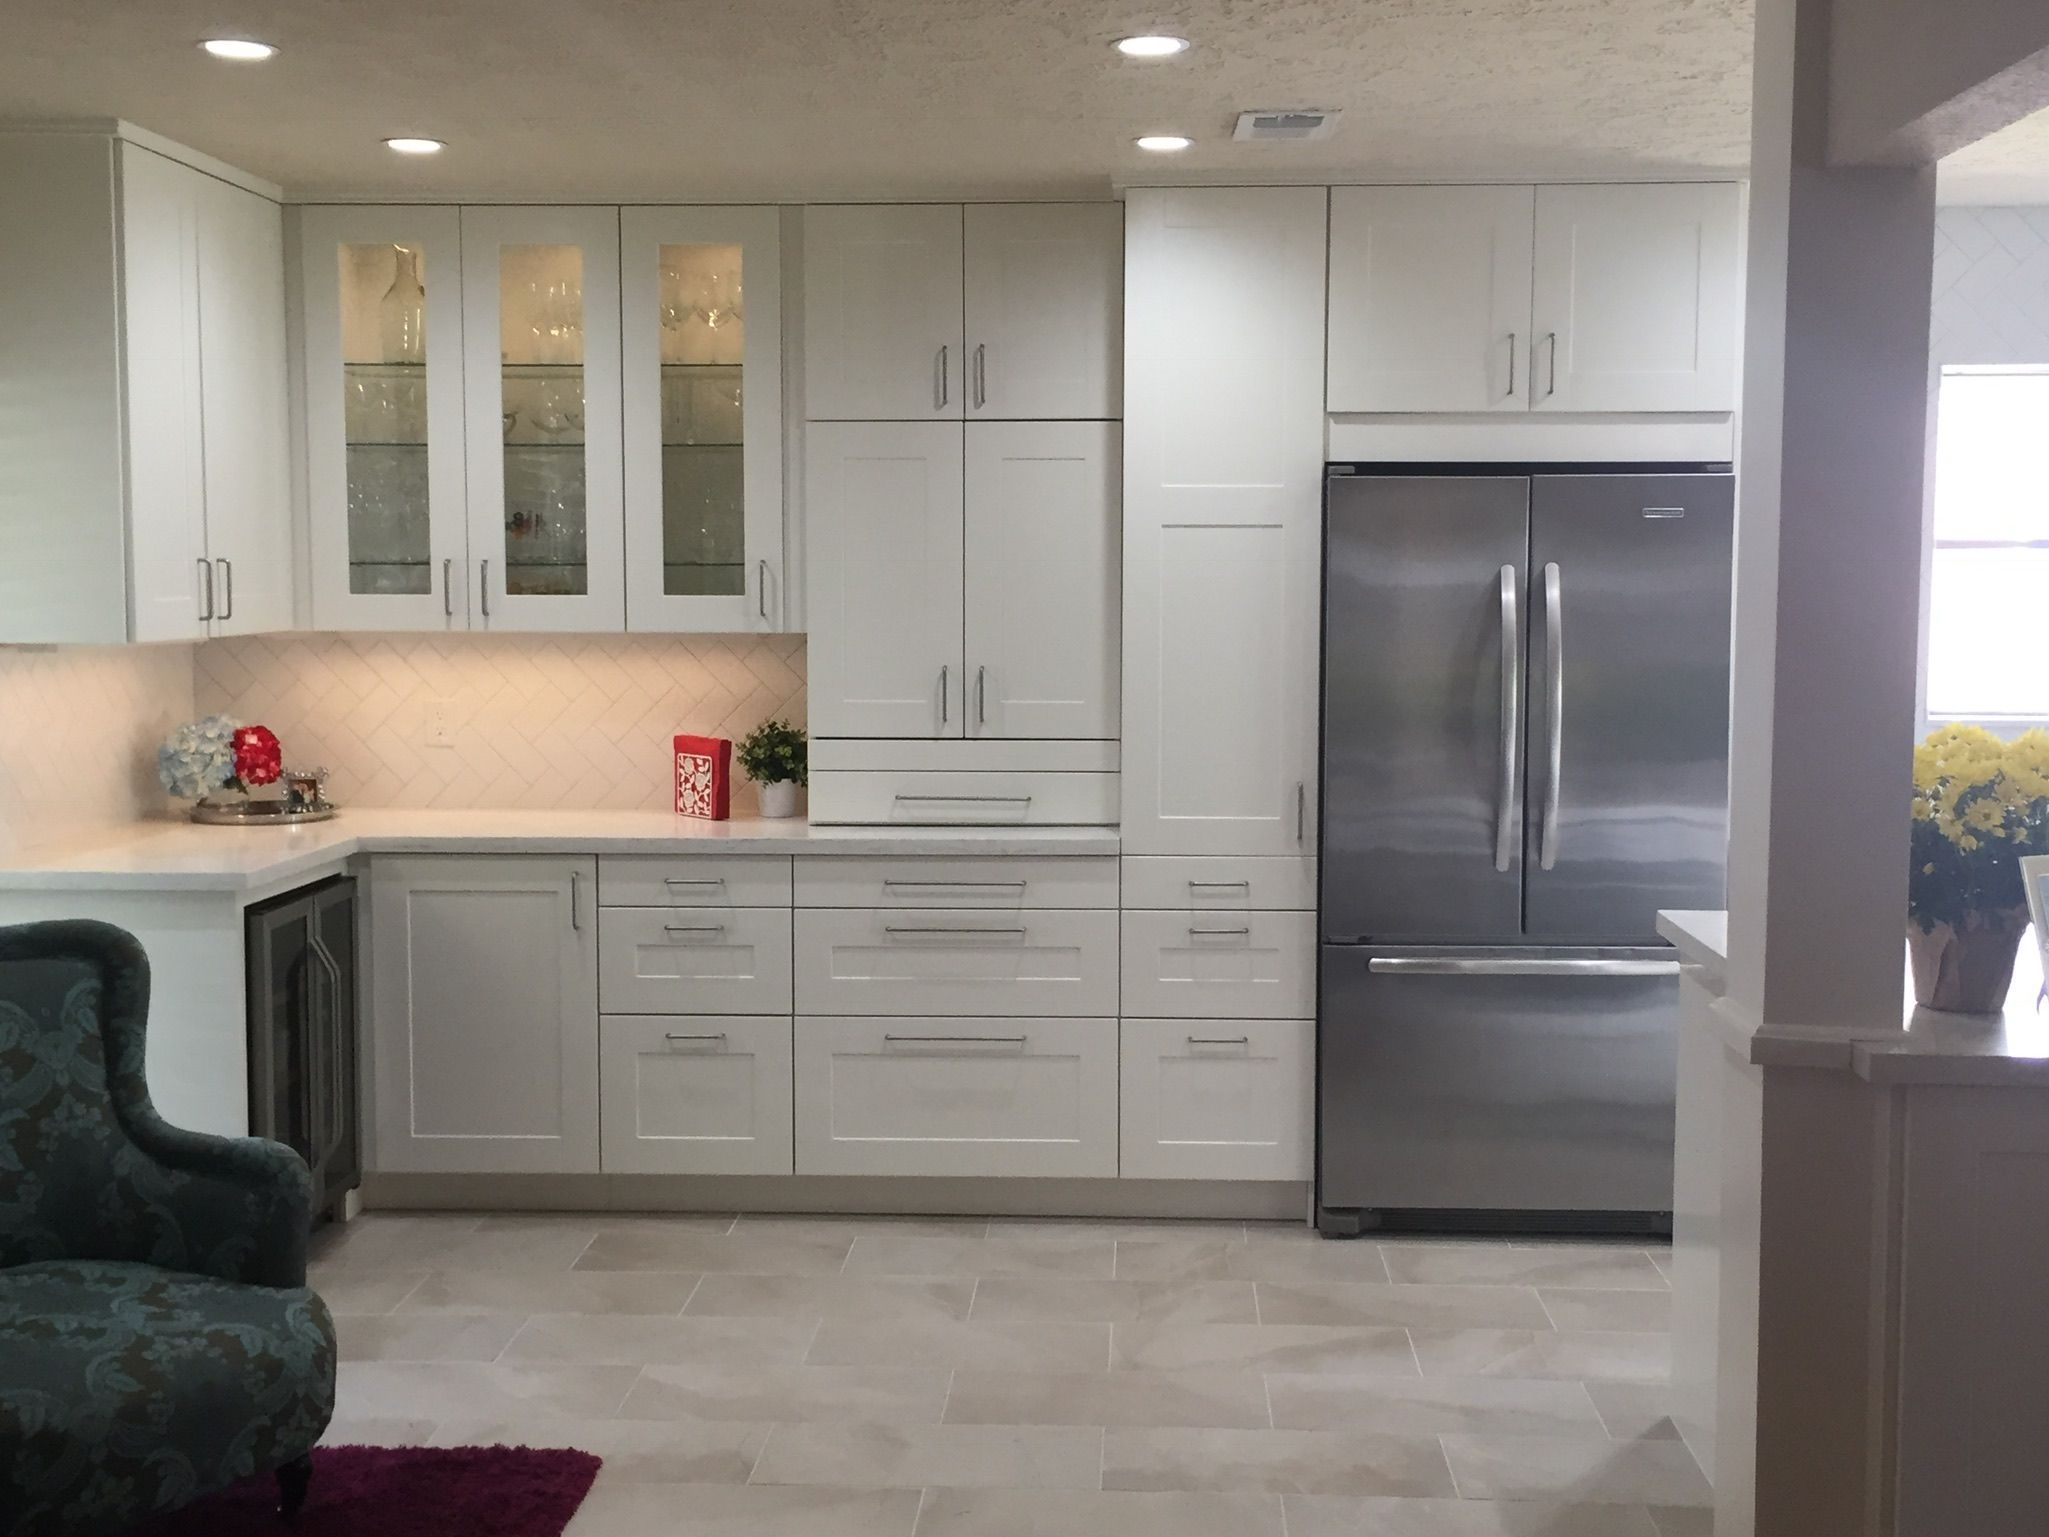 Ikea Kitchen Grimslov Cabinets Under And In Cabinet